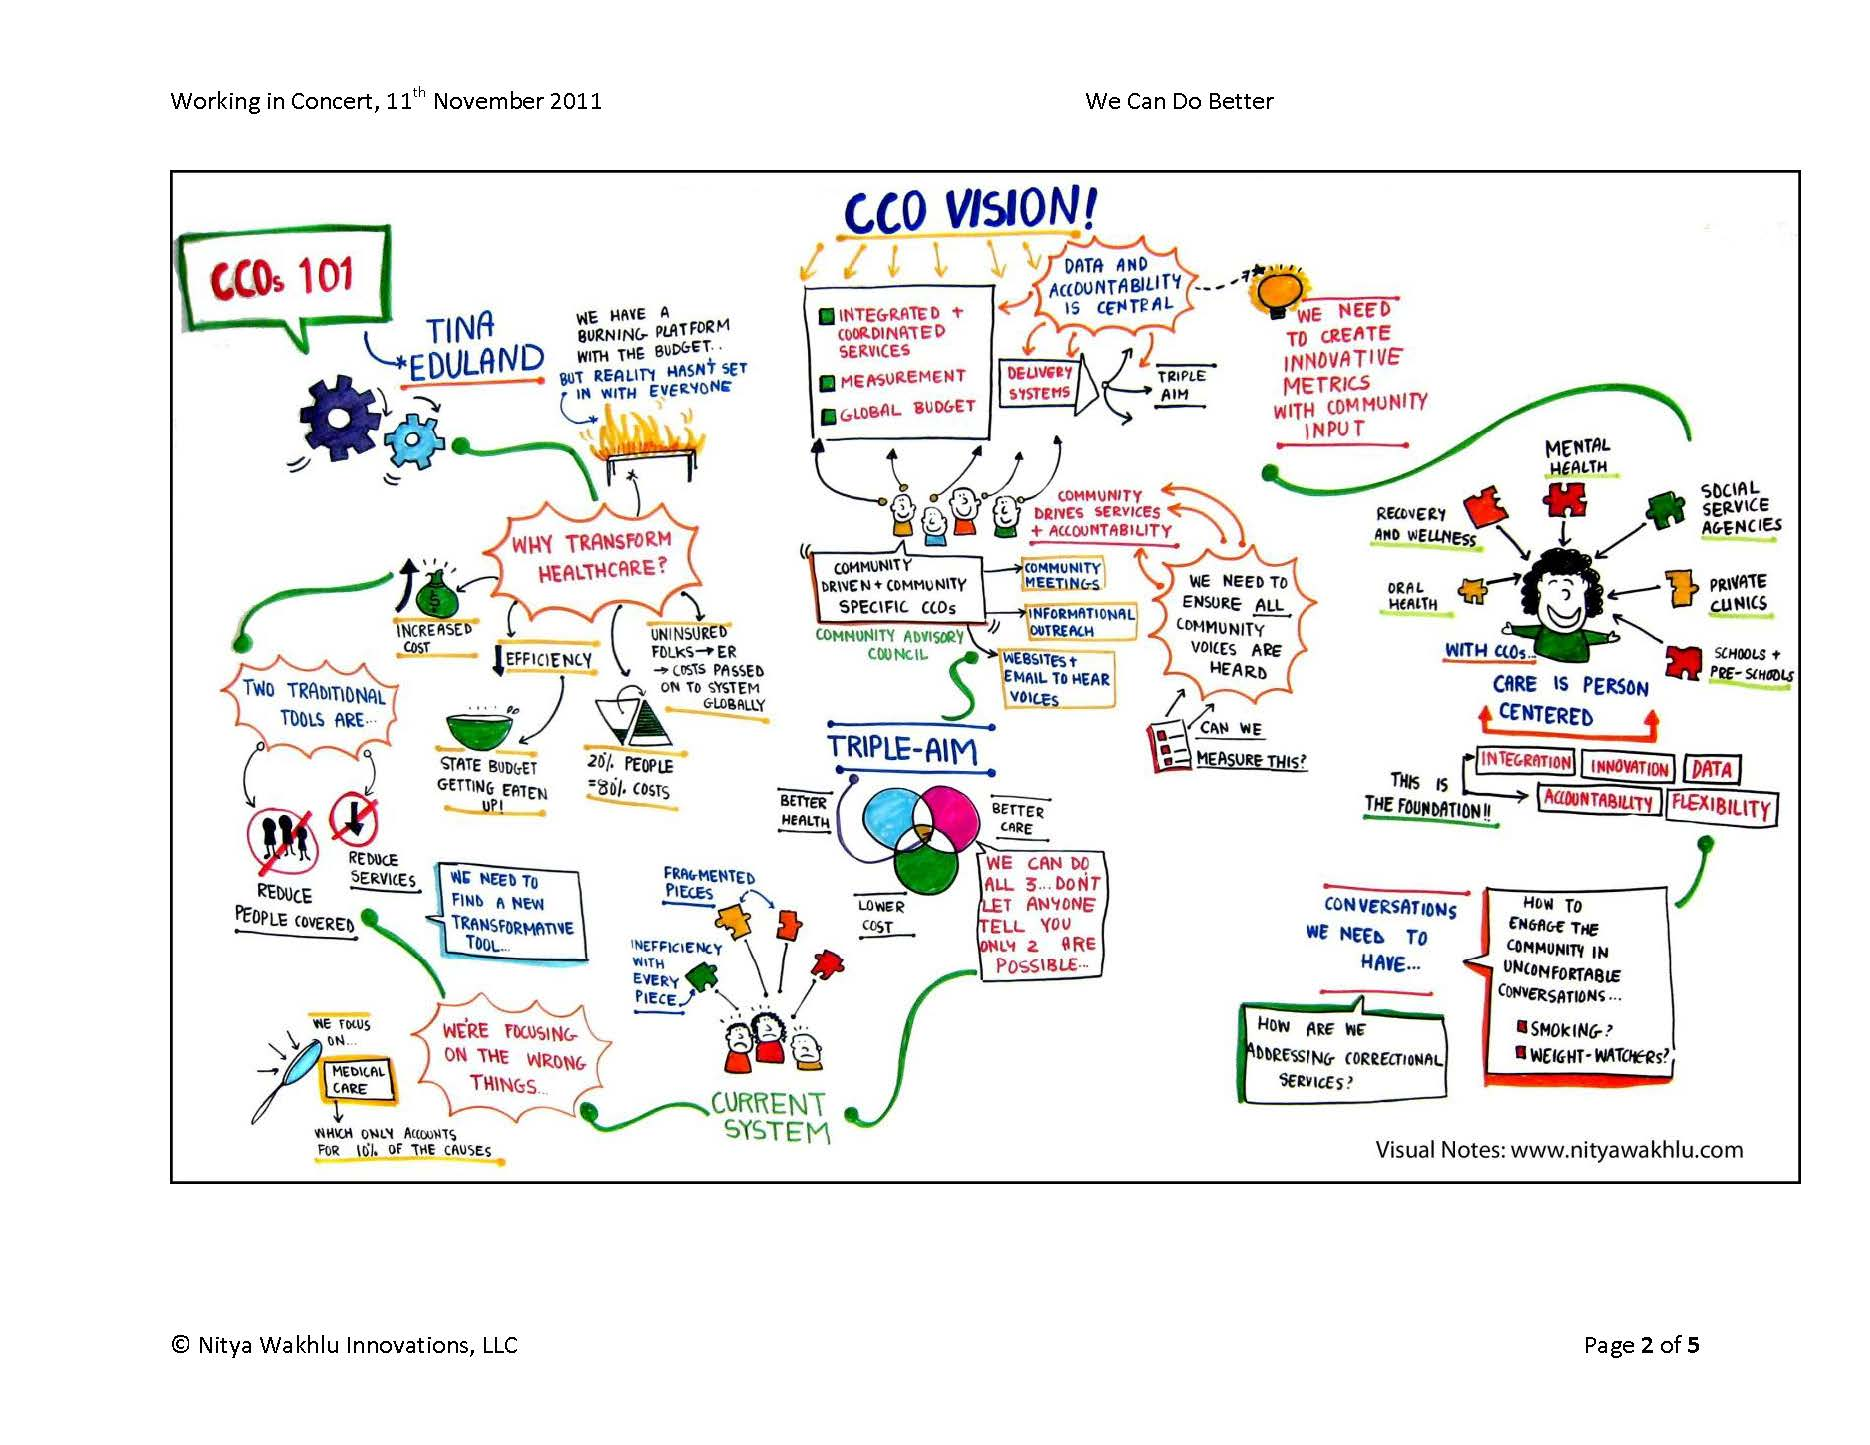 Nitya Wakhlu,Visual Notes 2